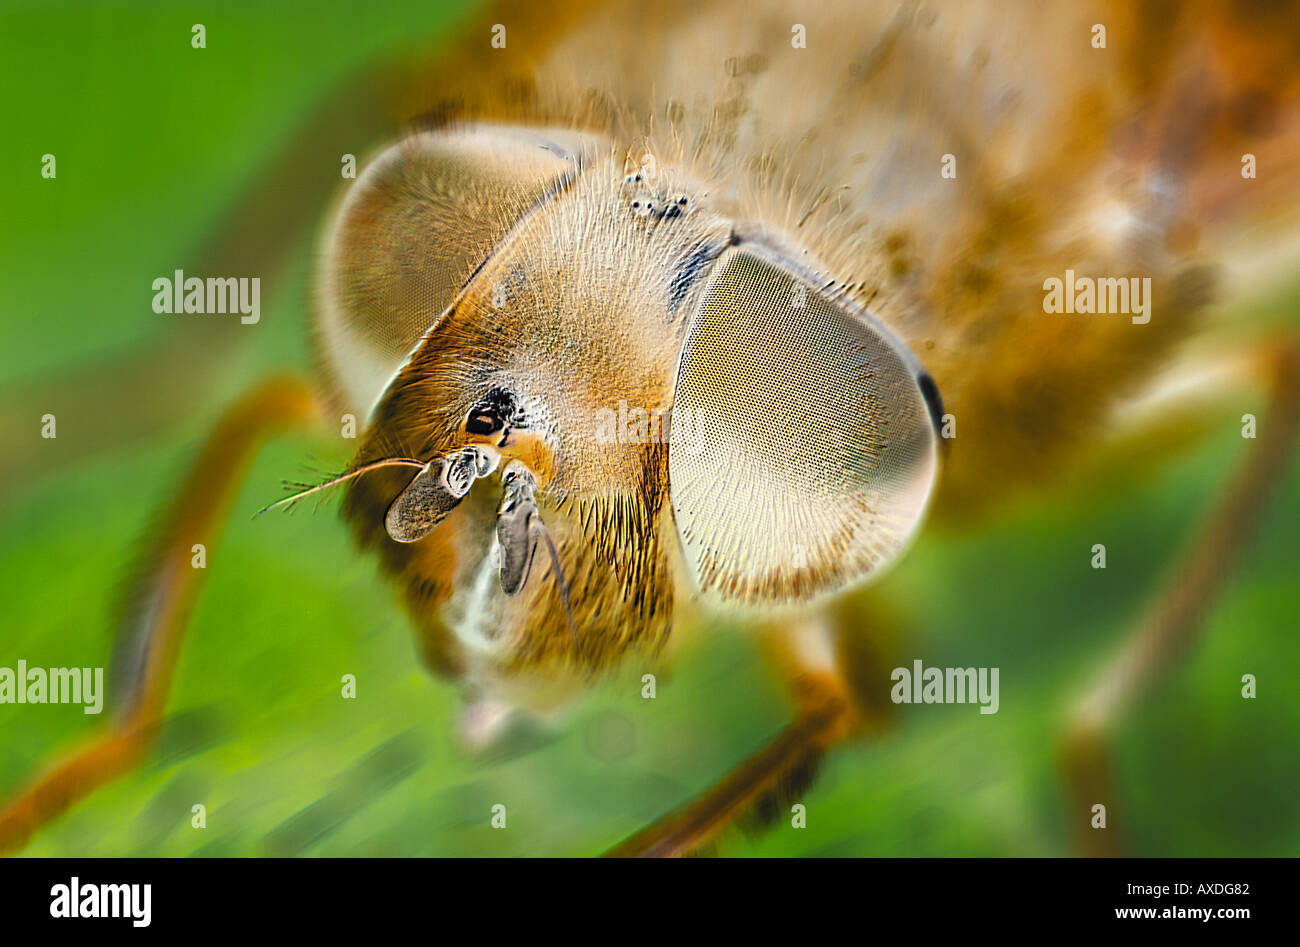 Electron Micrograph Style Image of the Compound Eyes of a Fly - Stock Image